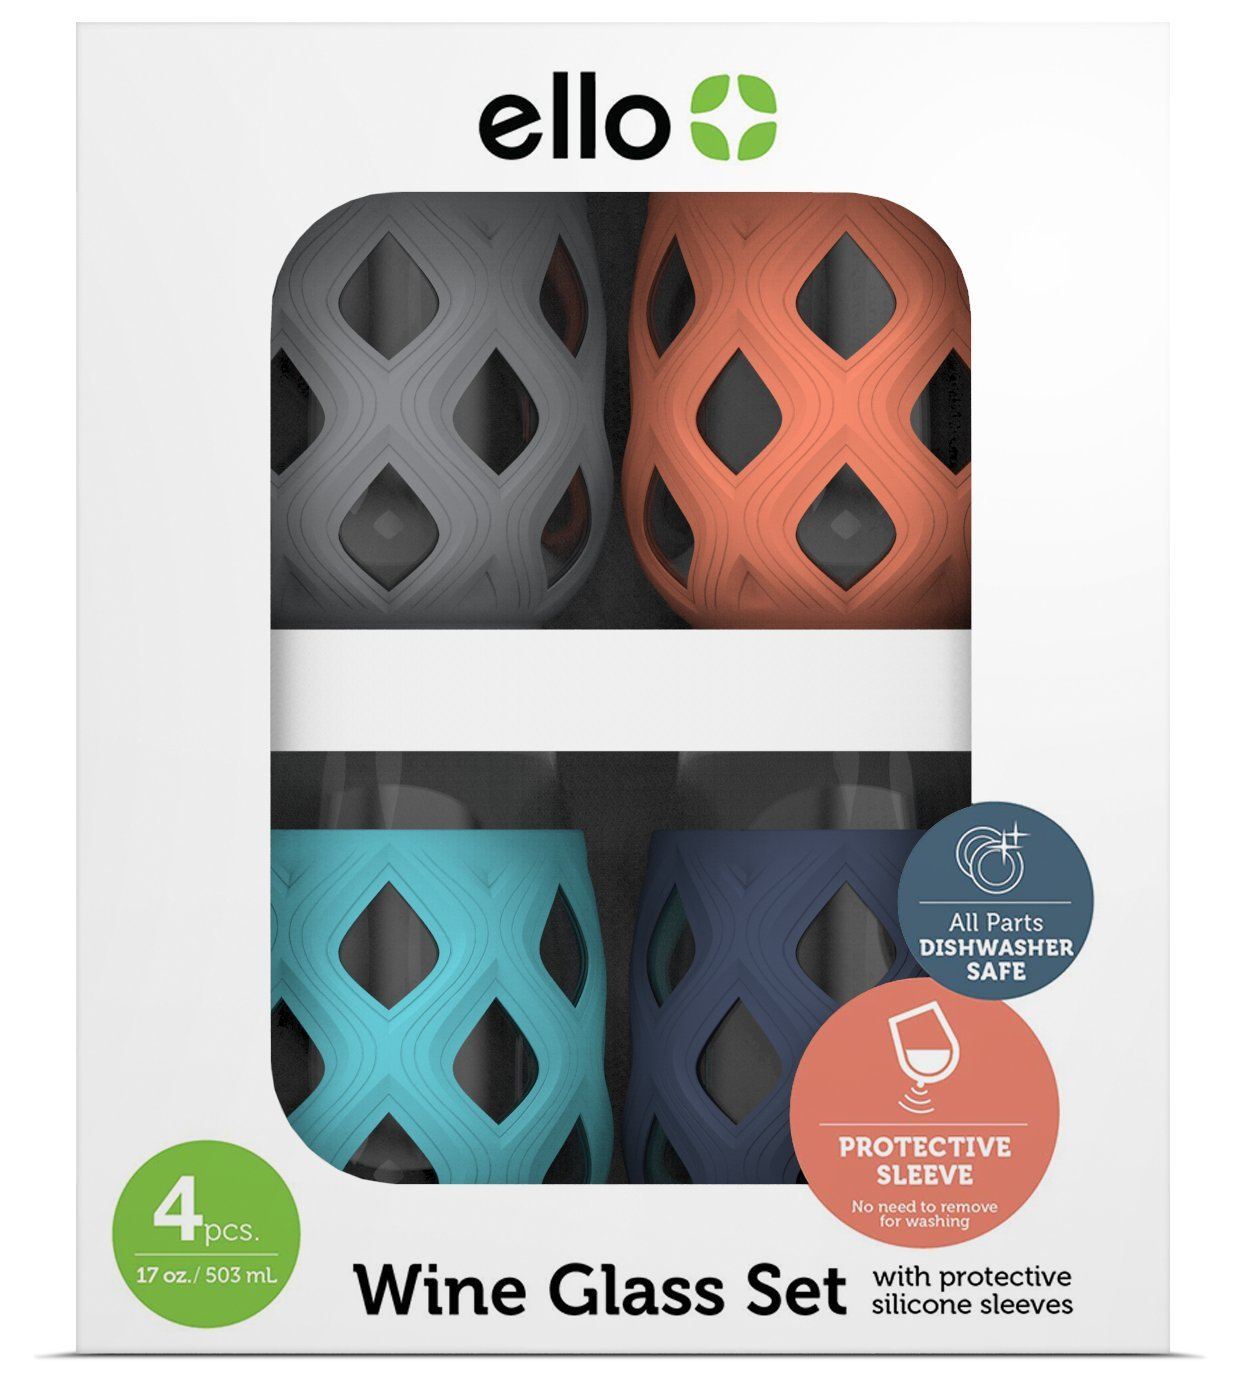 Ello Cru BPA-Free Stemless Wine Glass Set with Silicone Protection (4 Pack), Paloma, 17 oz.